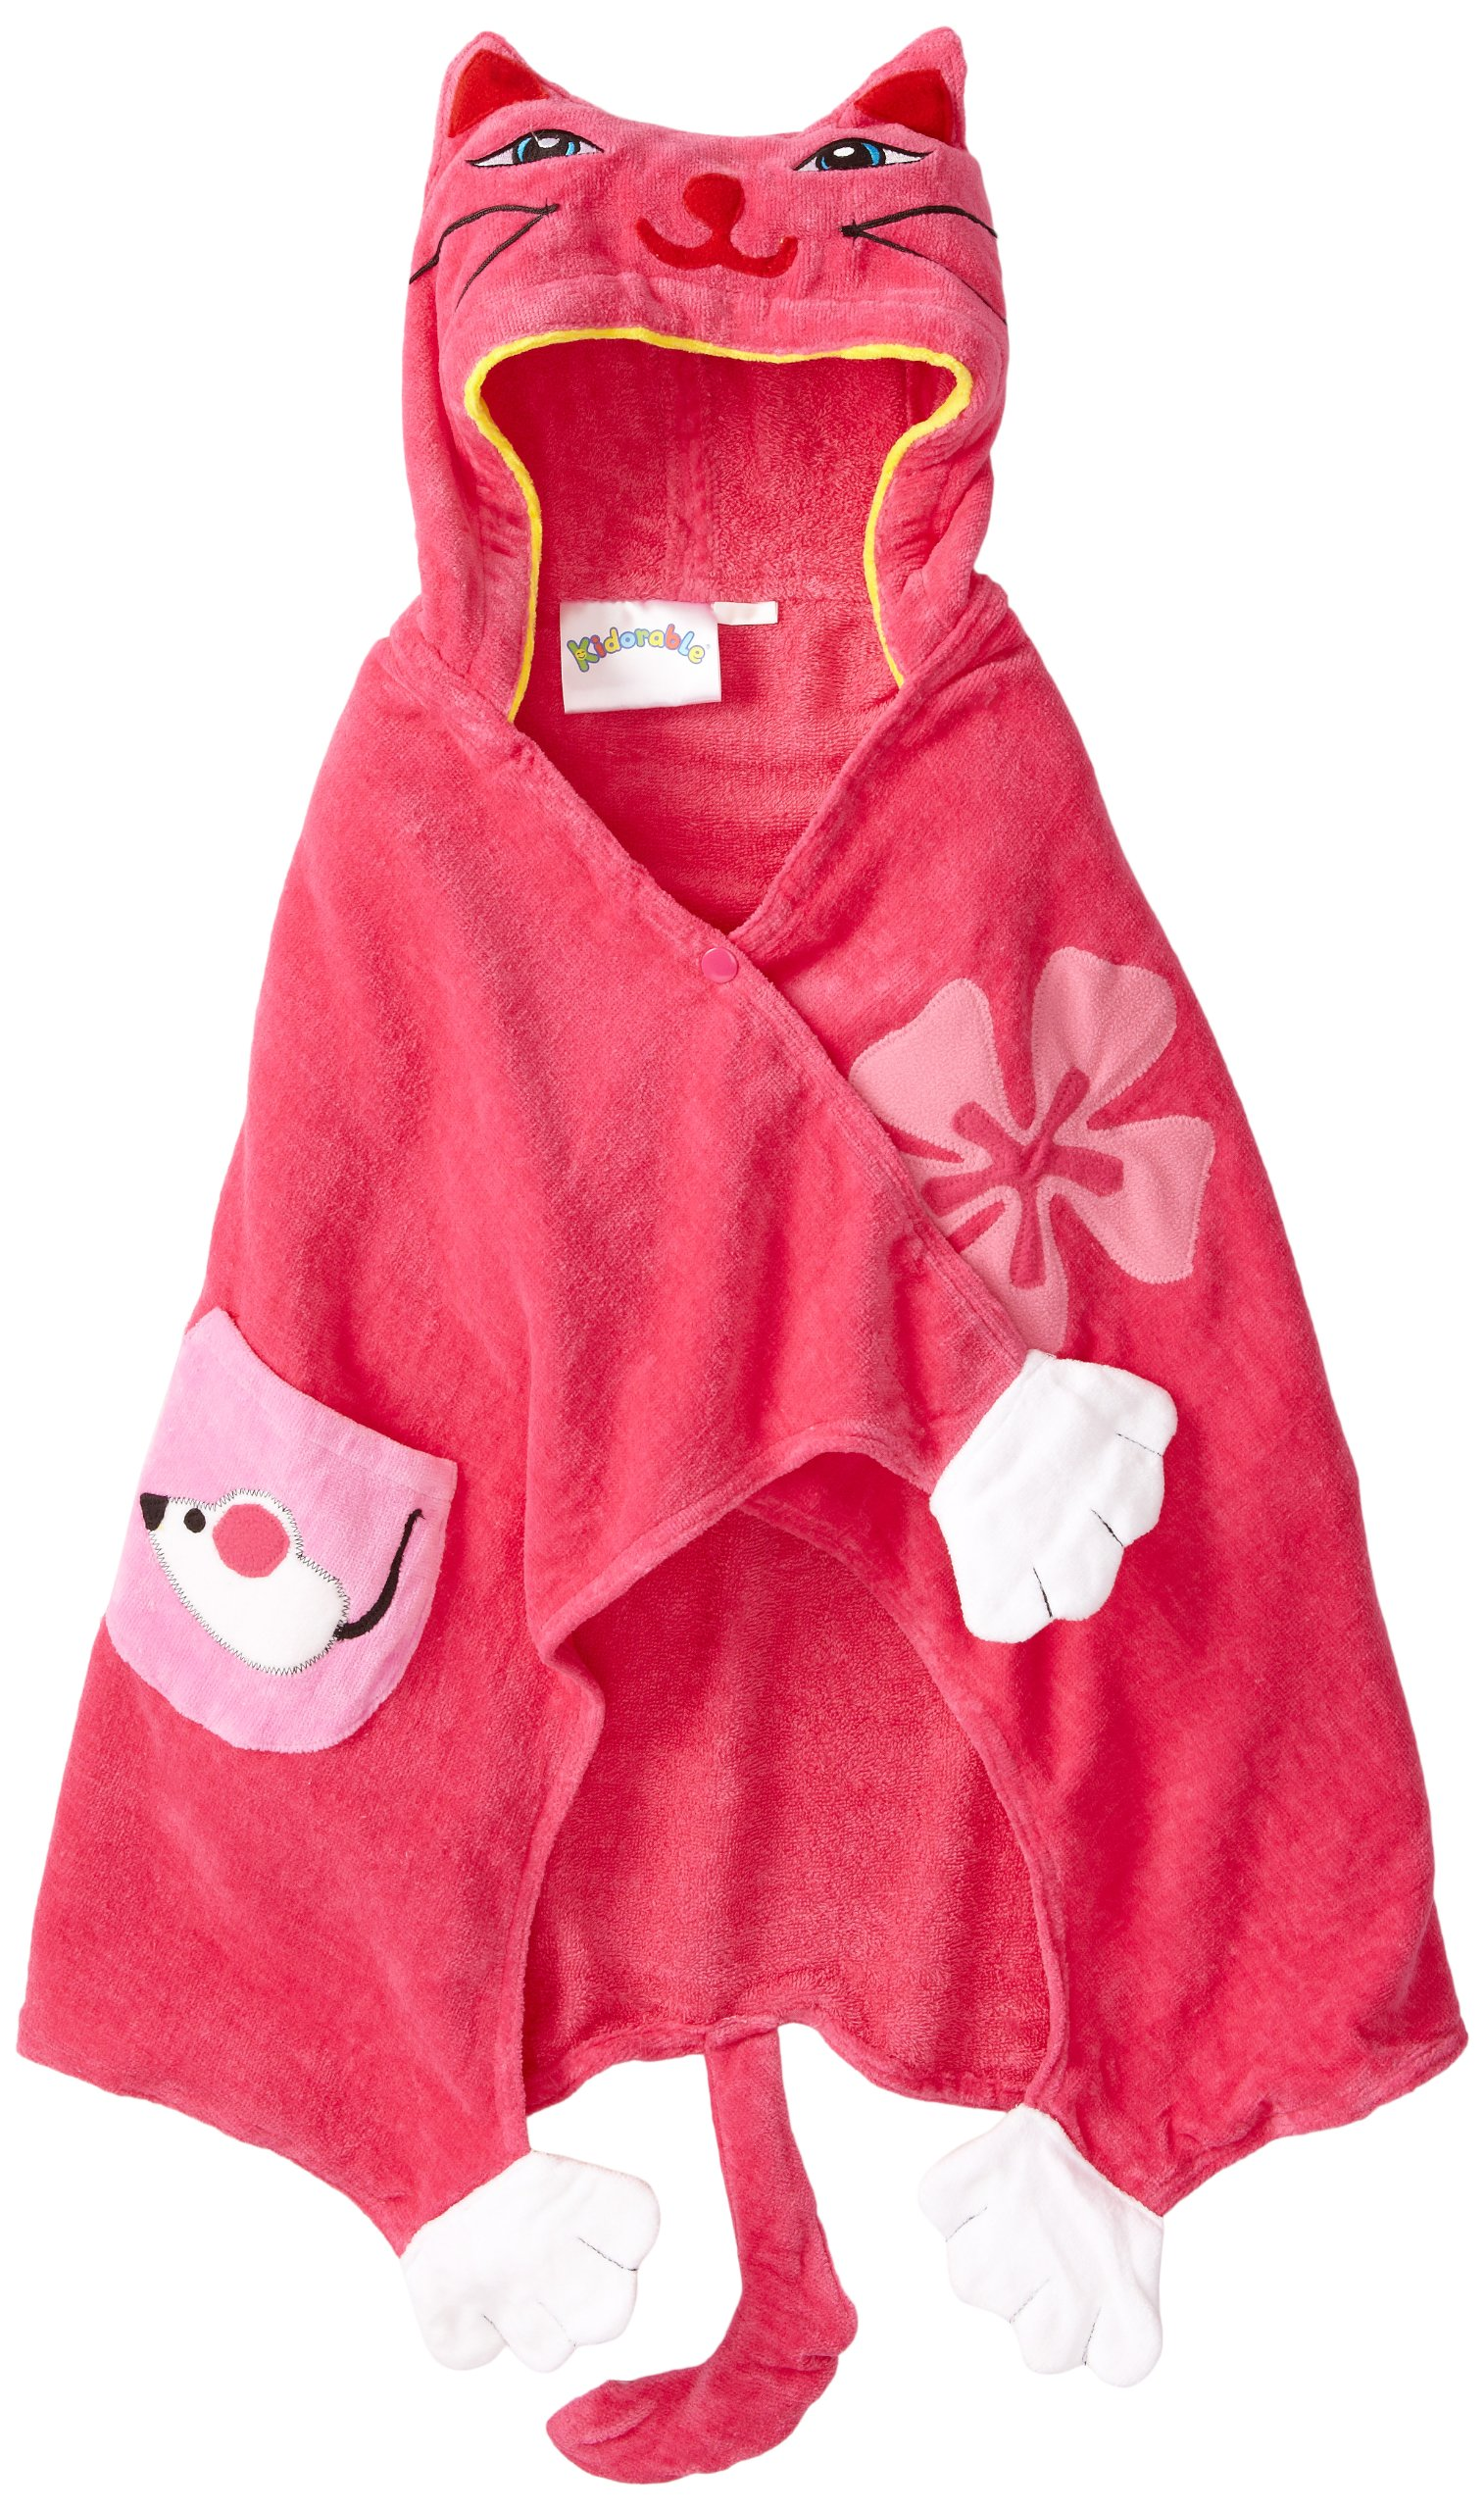 Kidorable Pink Lucky Cat All-Cotton Hooded Towel for Girls w/Fun Cat Ears Paws Flowers Ages 3-7